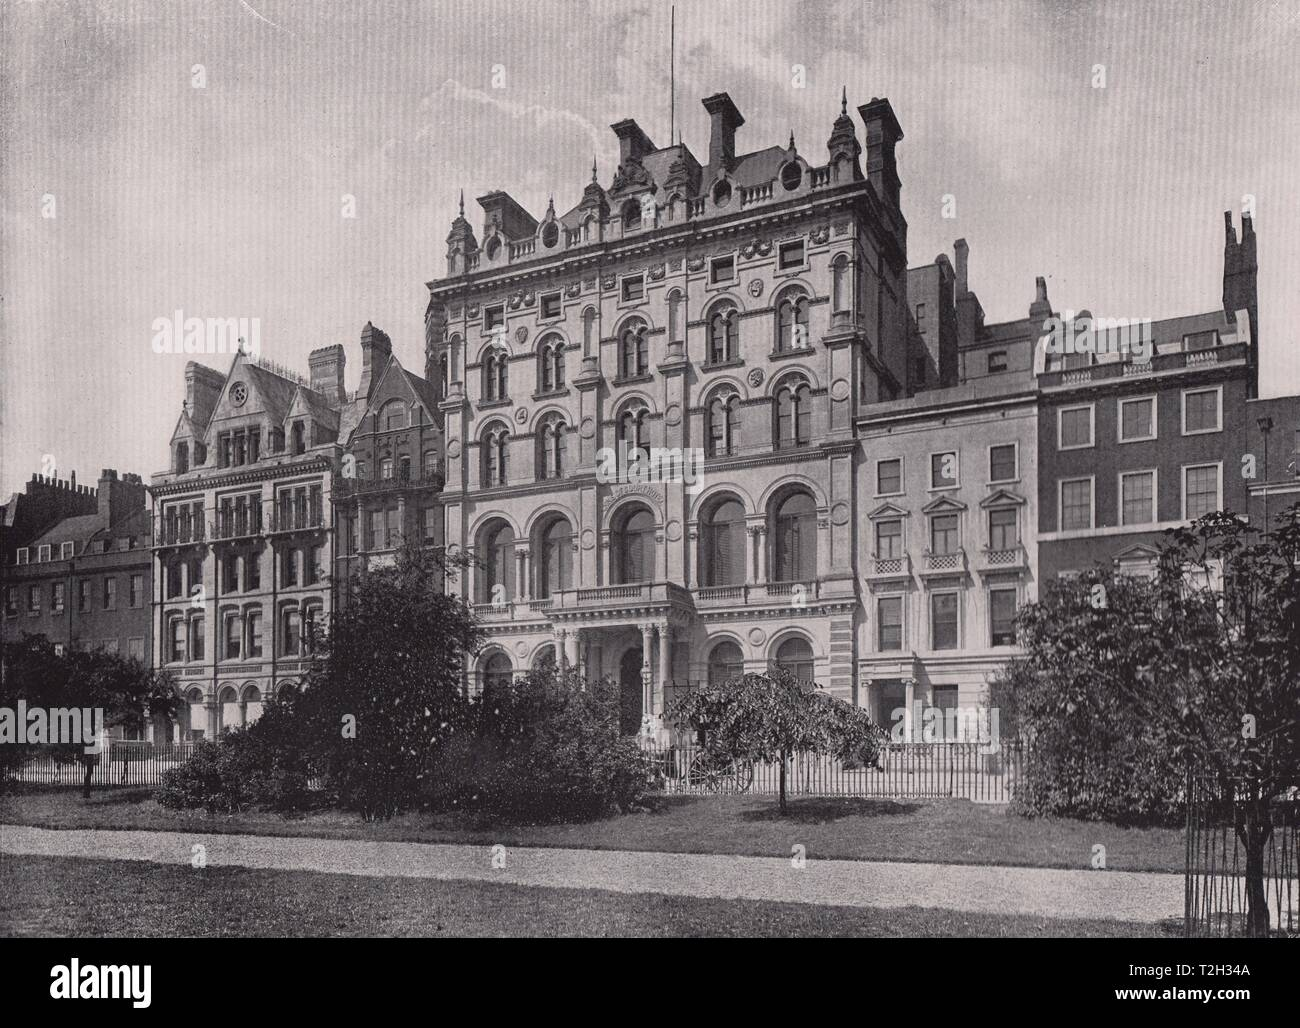 Lincoln's Inn Fields - Showing the Inns of court hotel - Stock Image